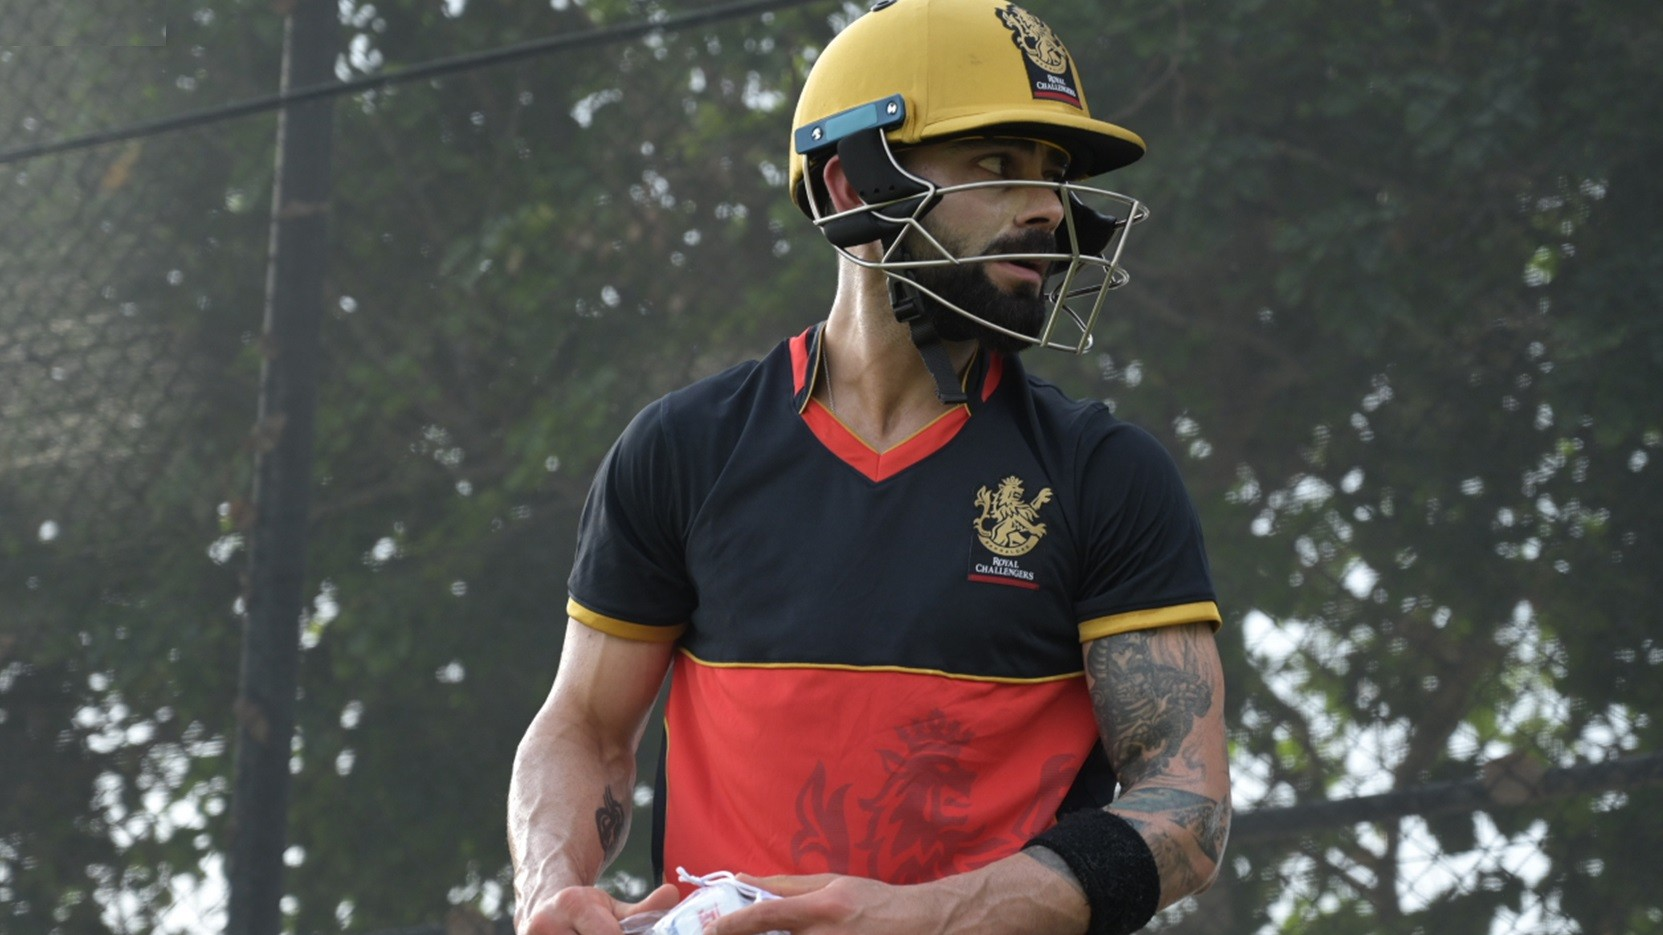 IPL 2020: WATCH - RCB skipper Virat Kohli starts net practice after quarantine